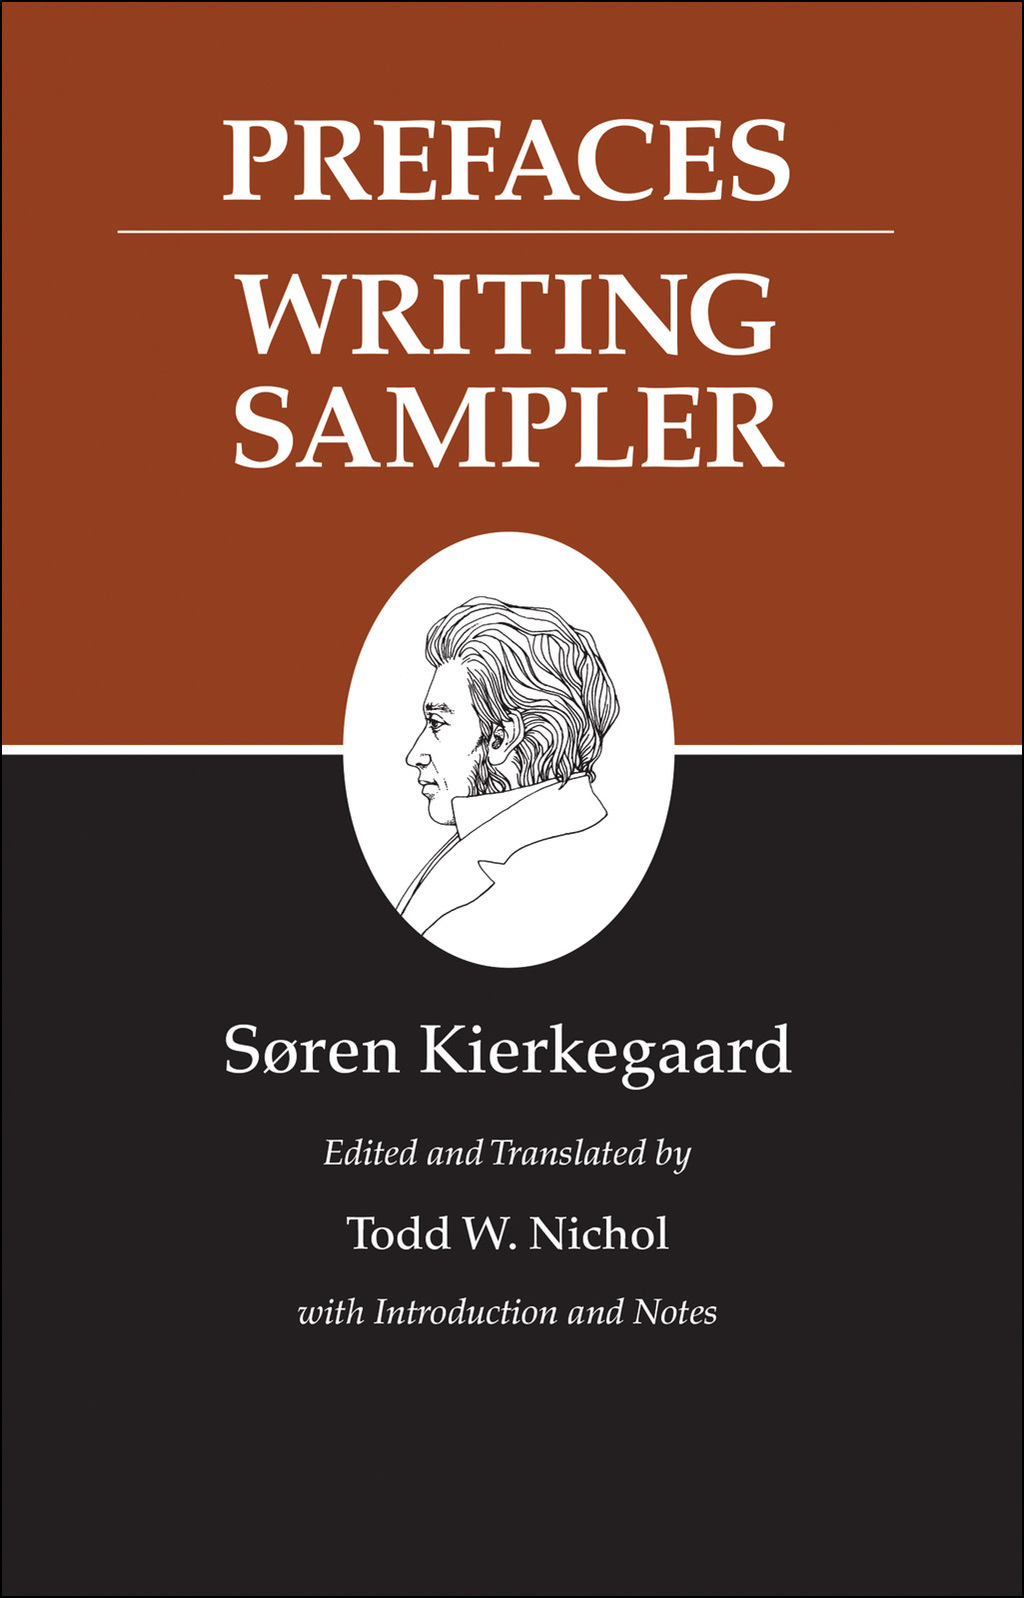 Kierkegaard's Writings, IX, Volume 9: Prefaces: Writing Sampler (ebook) eBooks